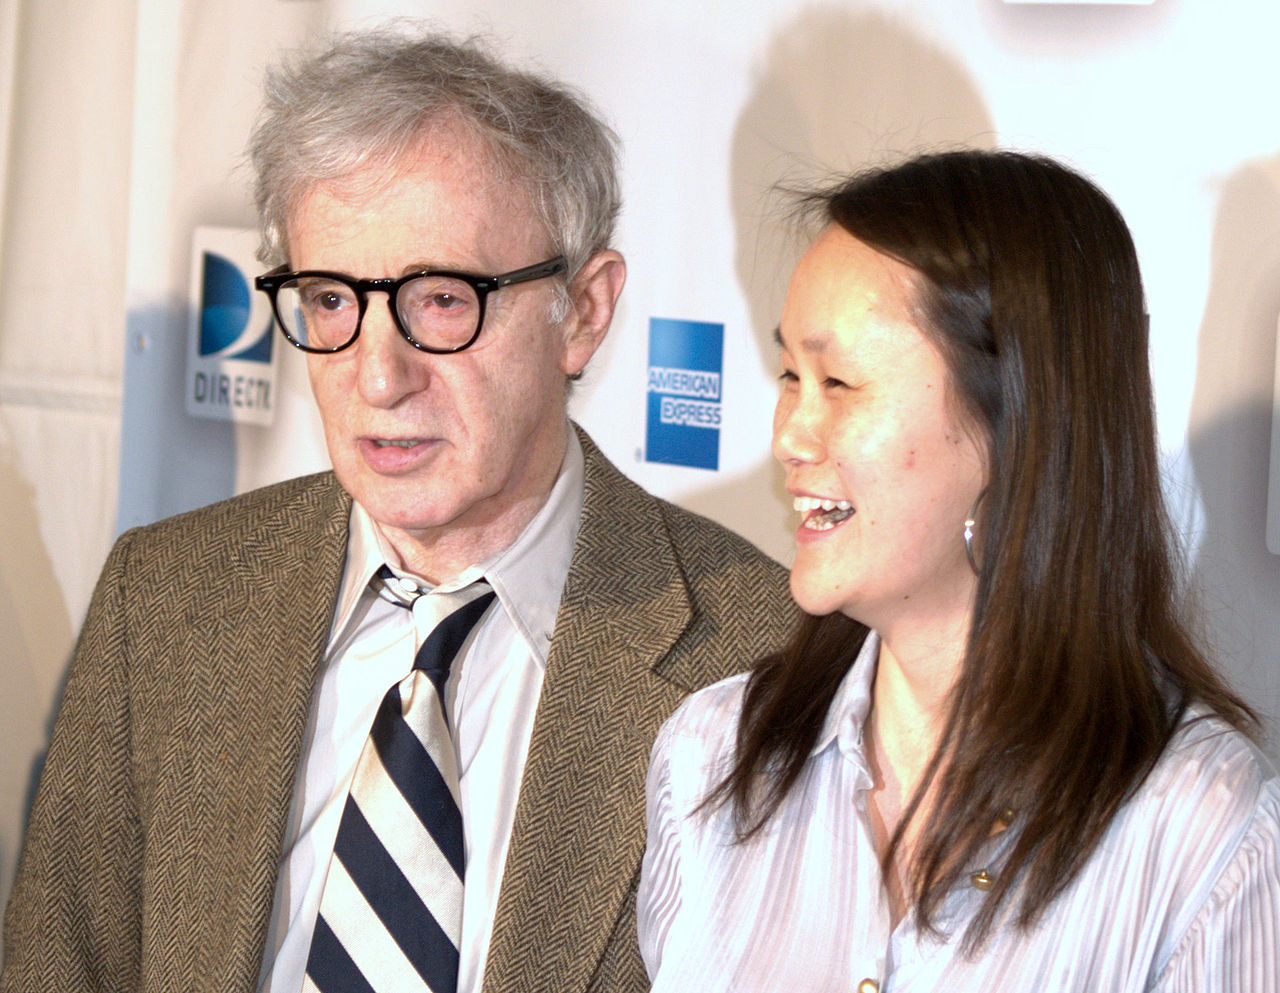 Hachette cancels plan to publish Woody Allen memoir